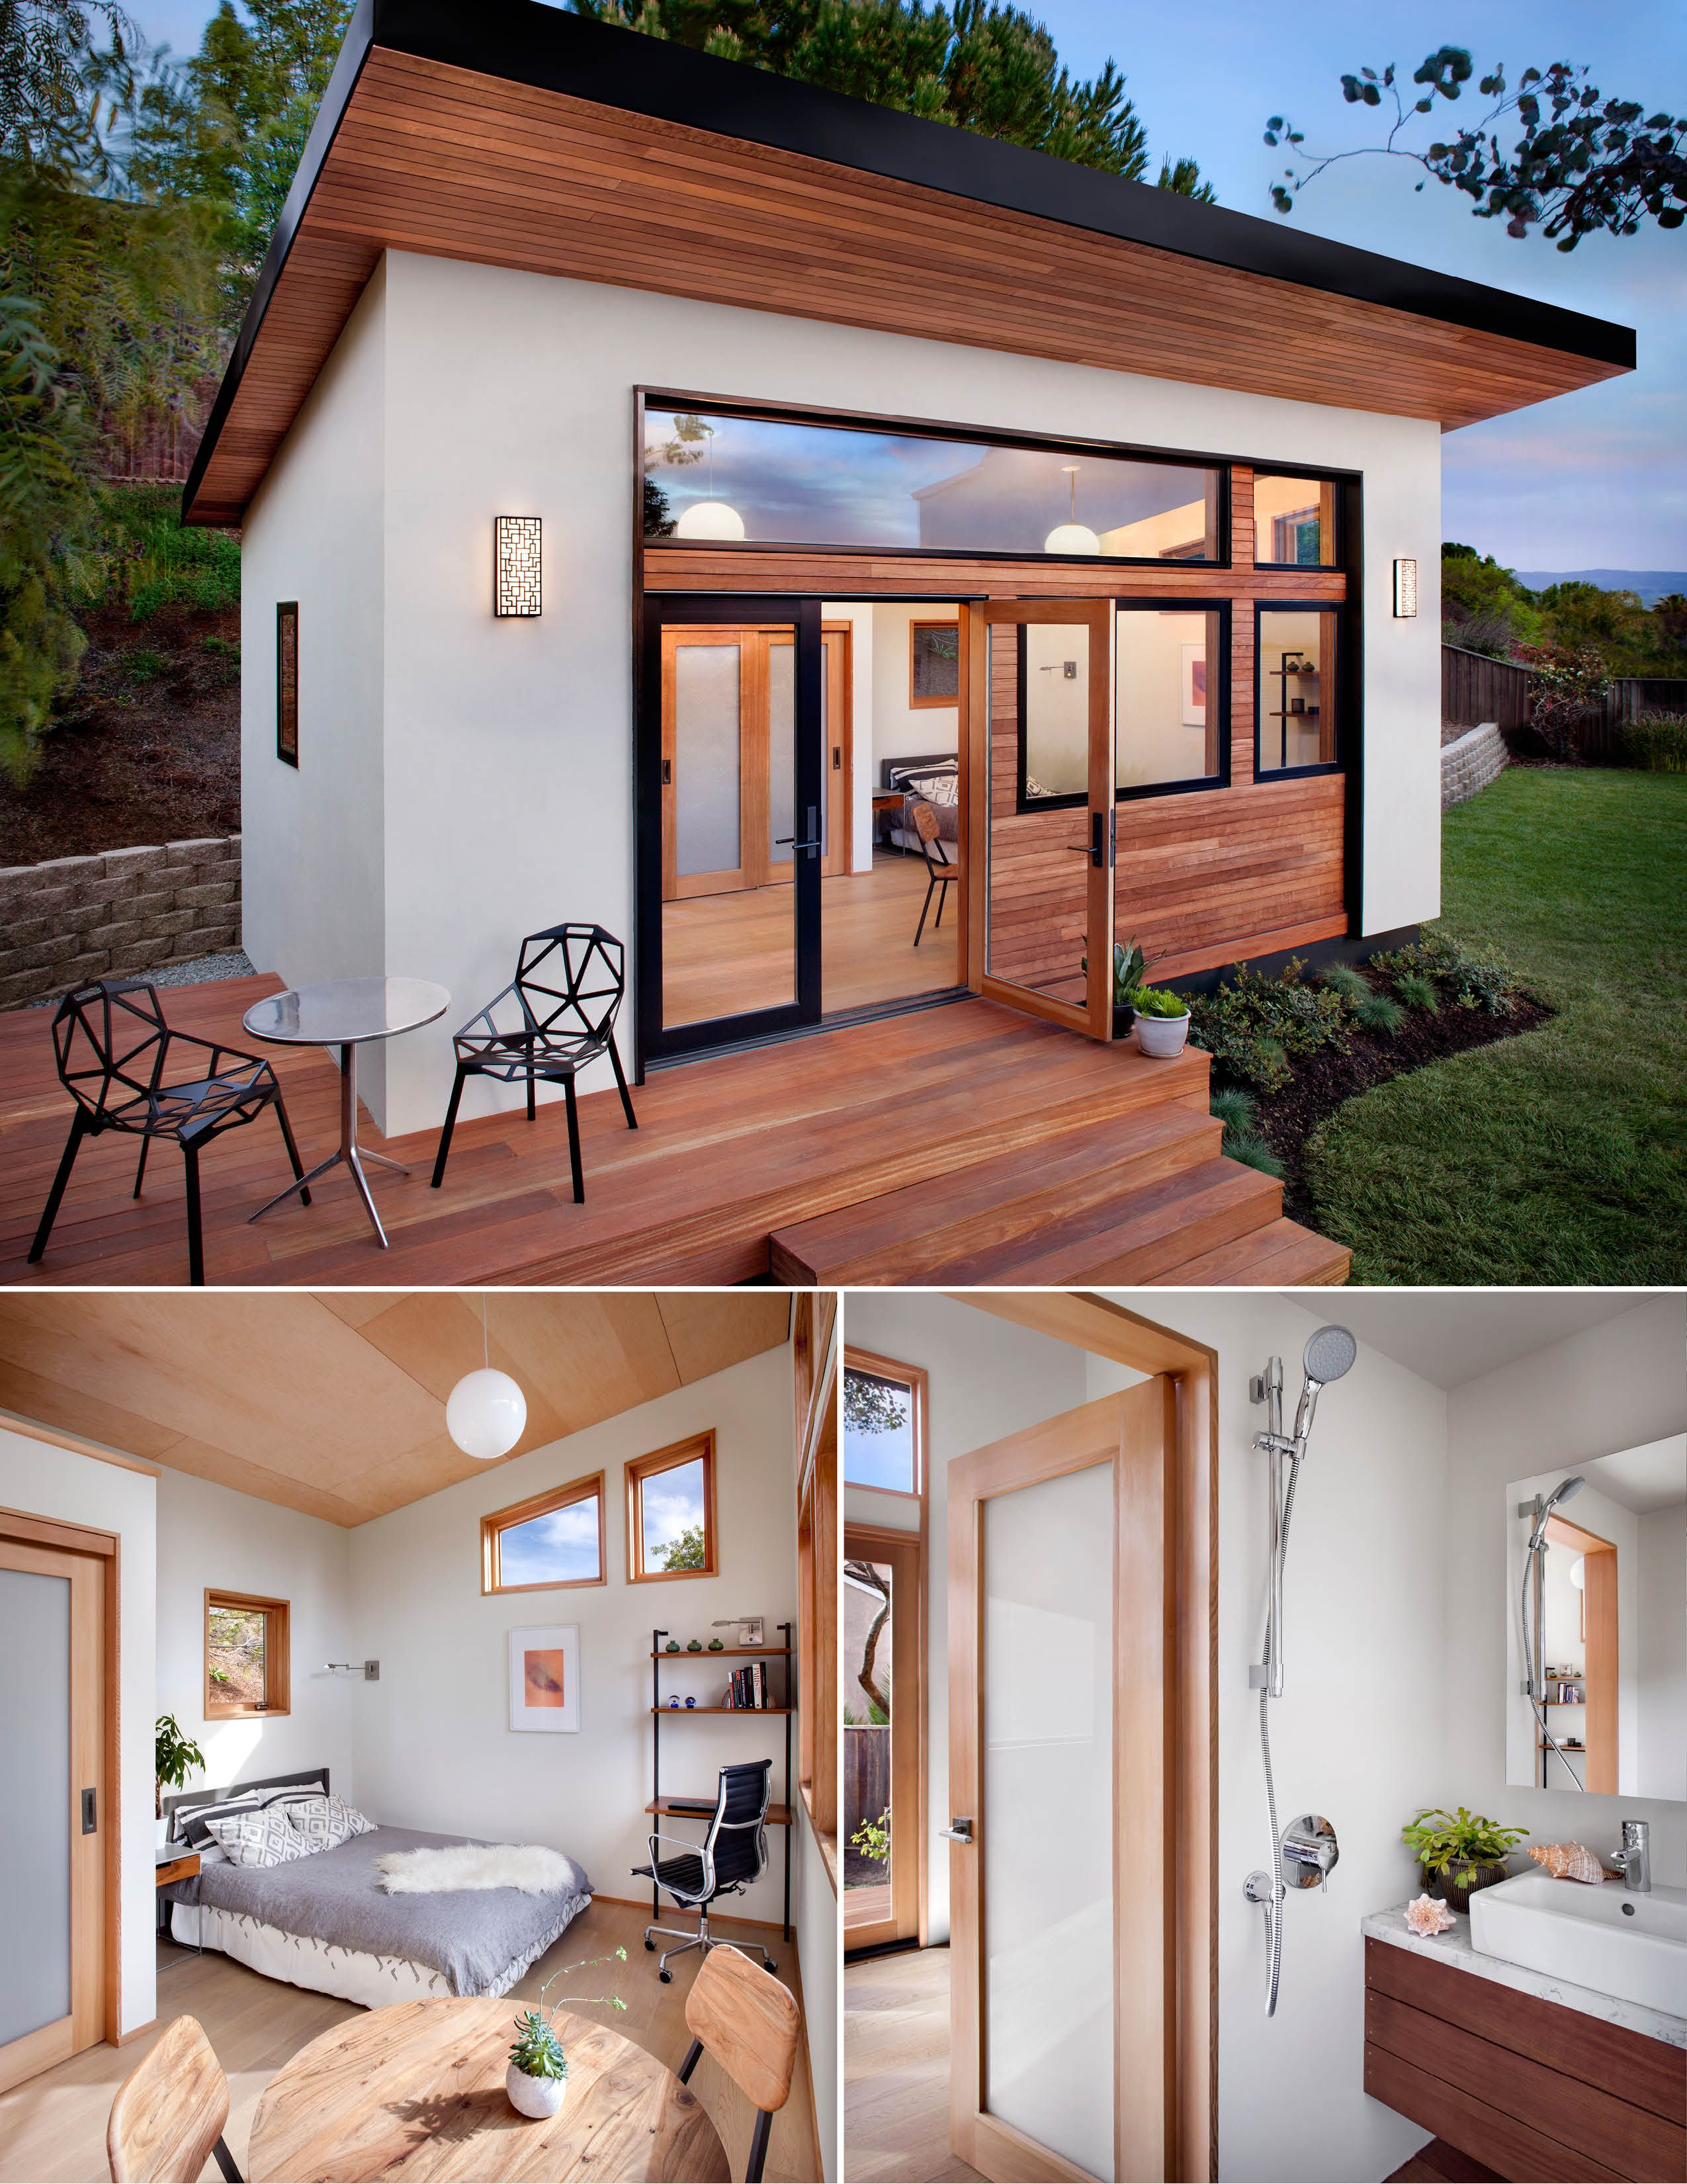 Avava – Models | Tiny house design, Modern tiny house, Tiny house ...